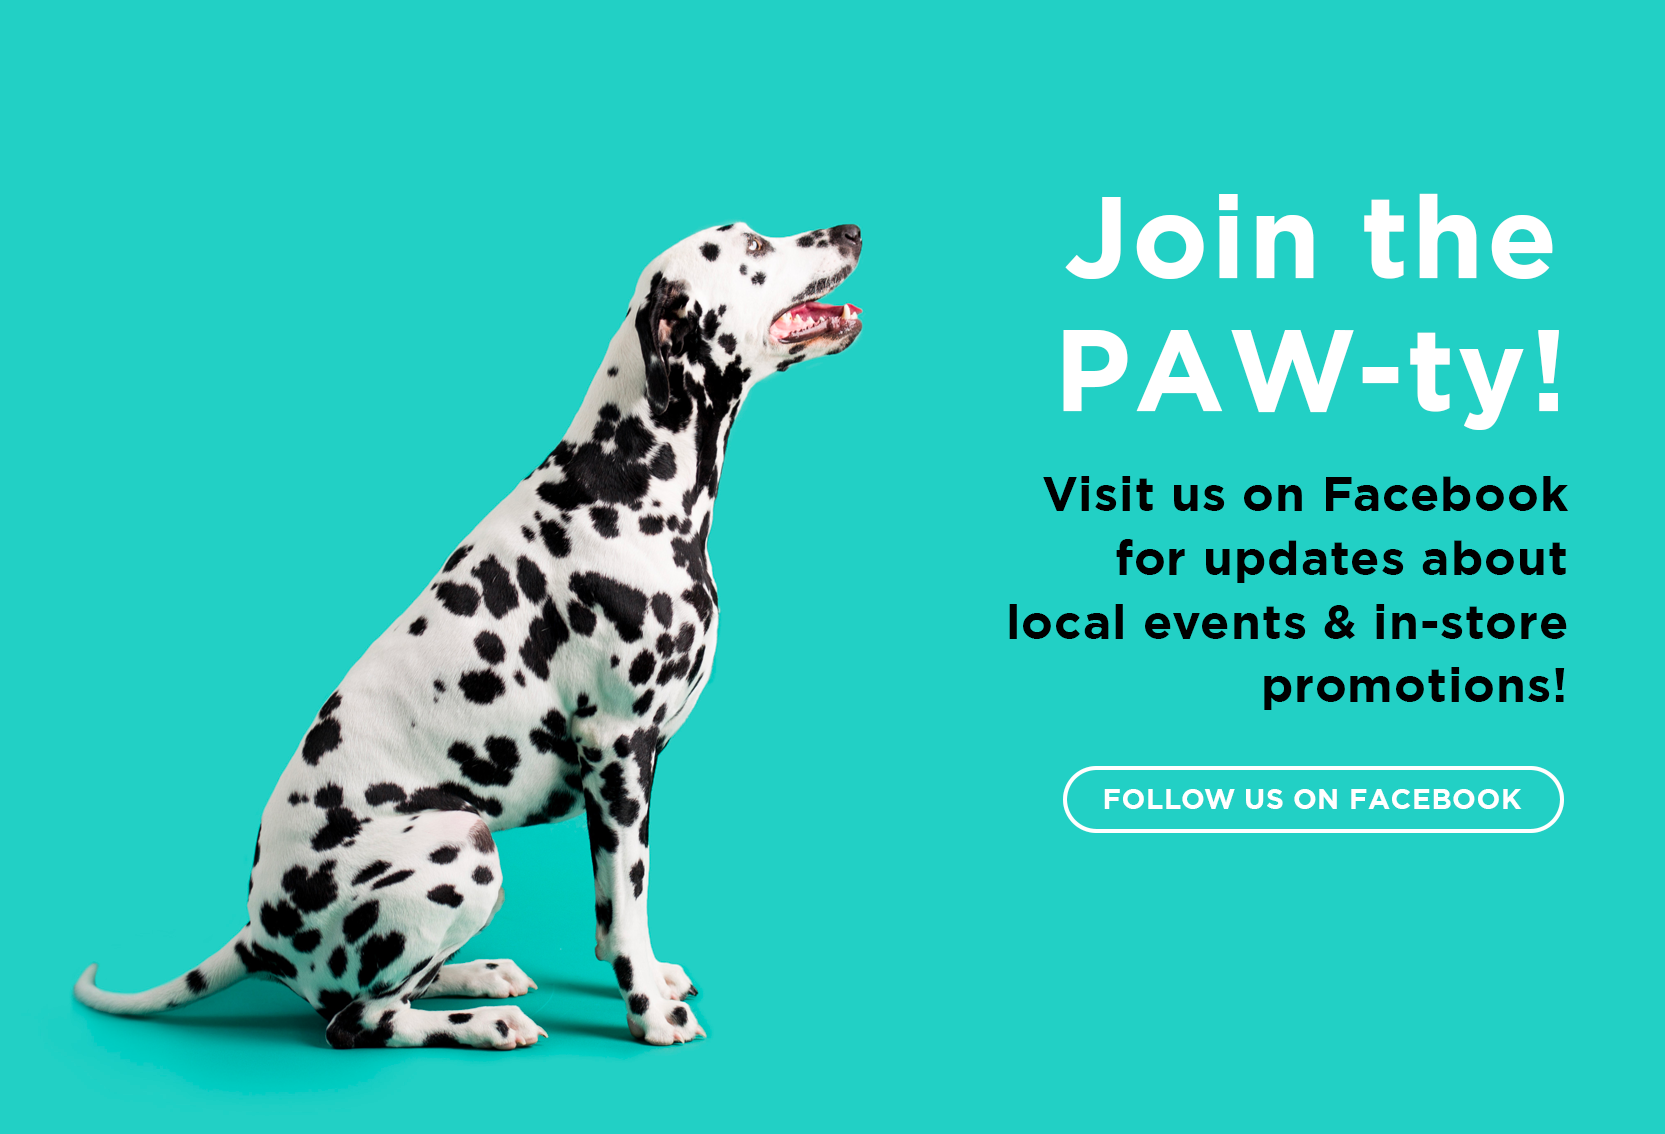 Join the PAW-ty! Visit us on Facebook for updates about local events & in-store promotions!